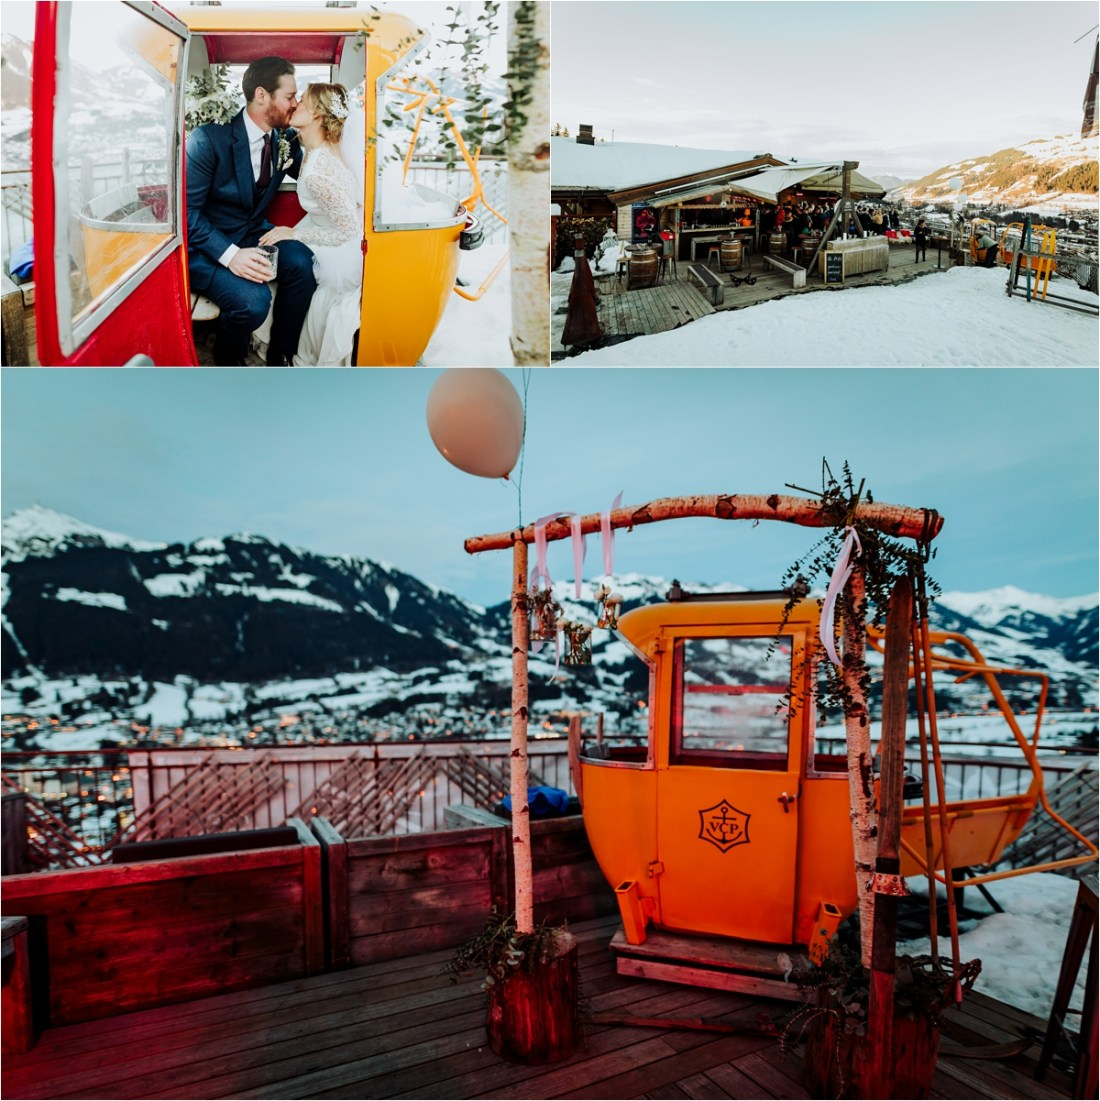 A vintage ski gondola at the Ganslern Alm in Kitzbühel by Wild Connections Photography